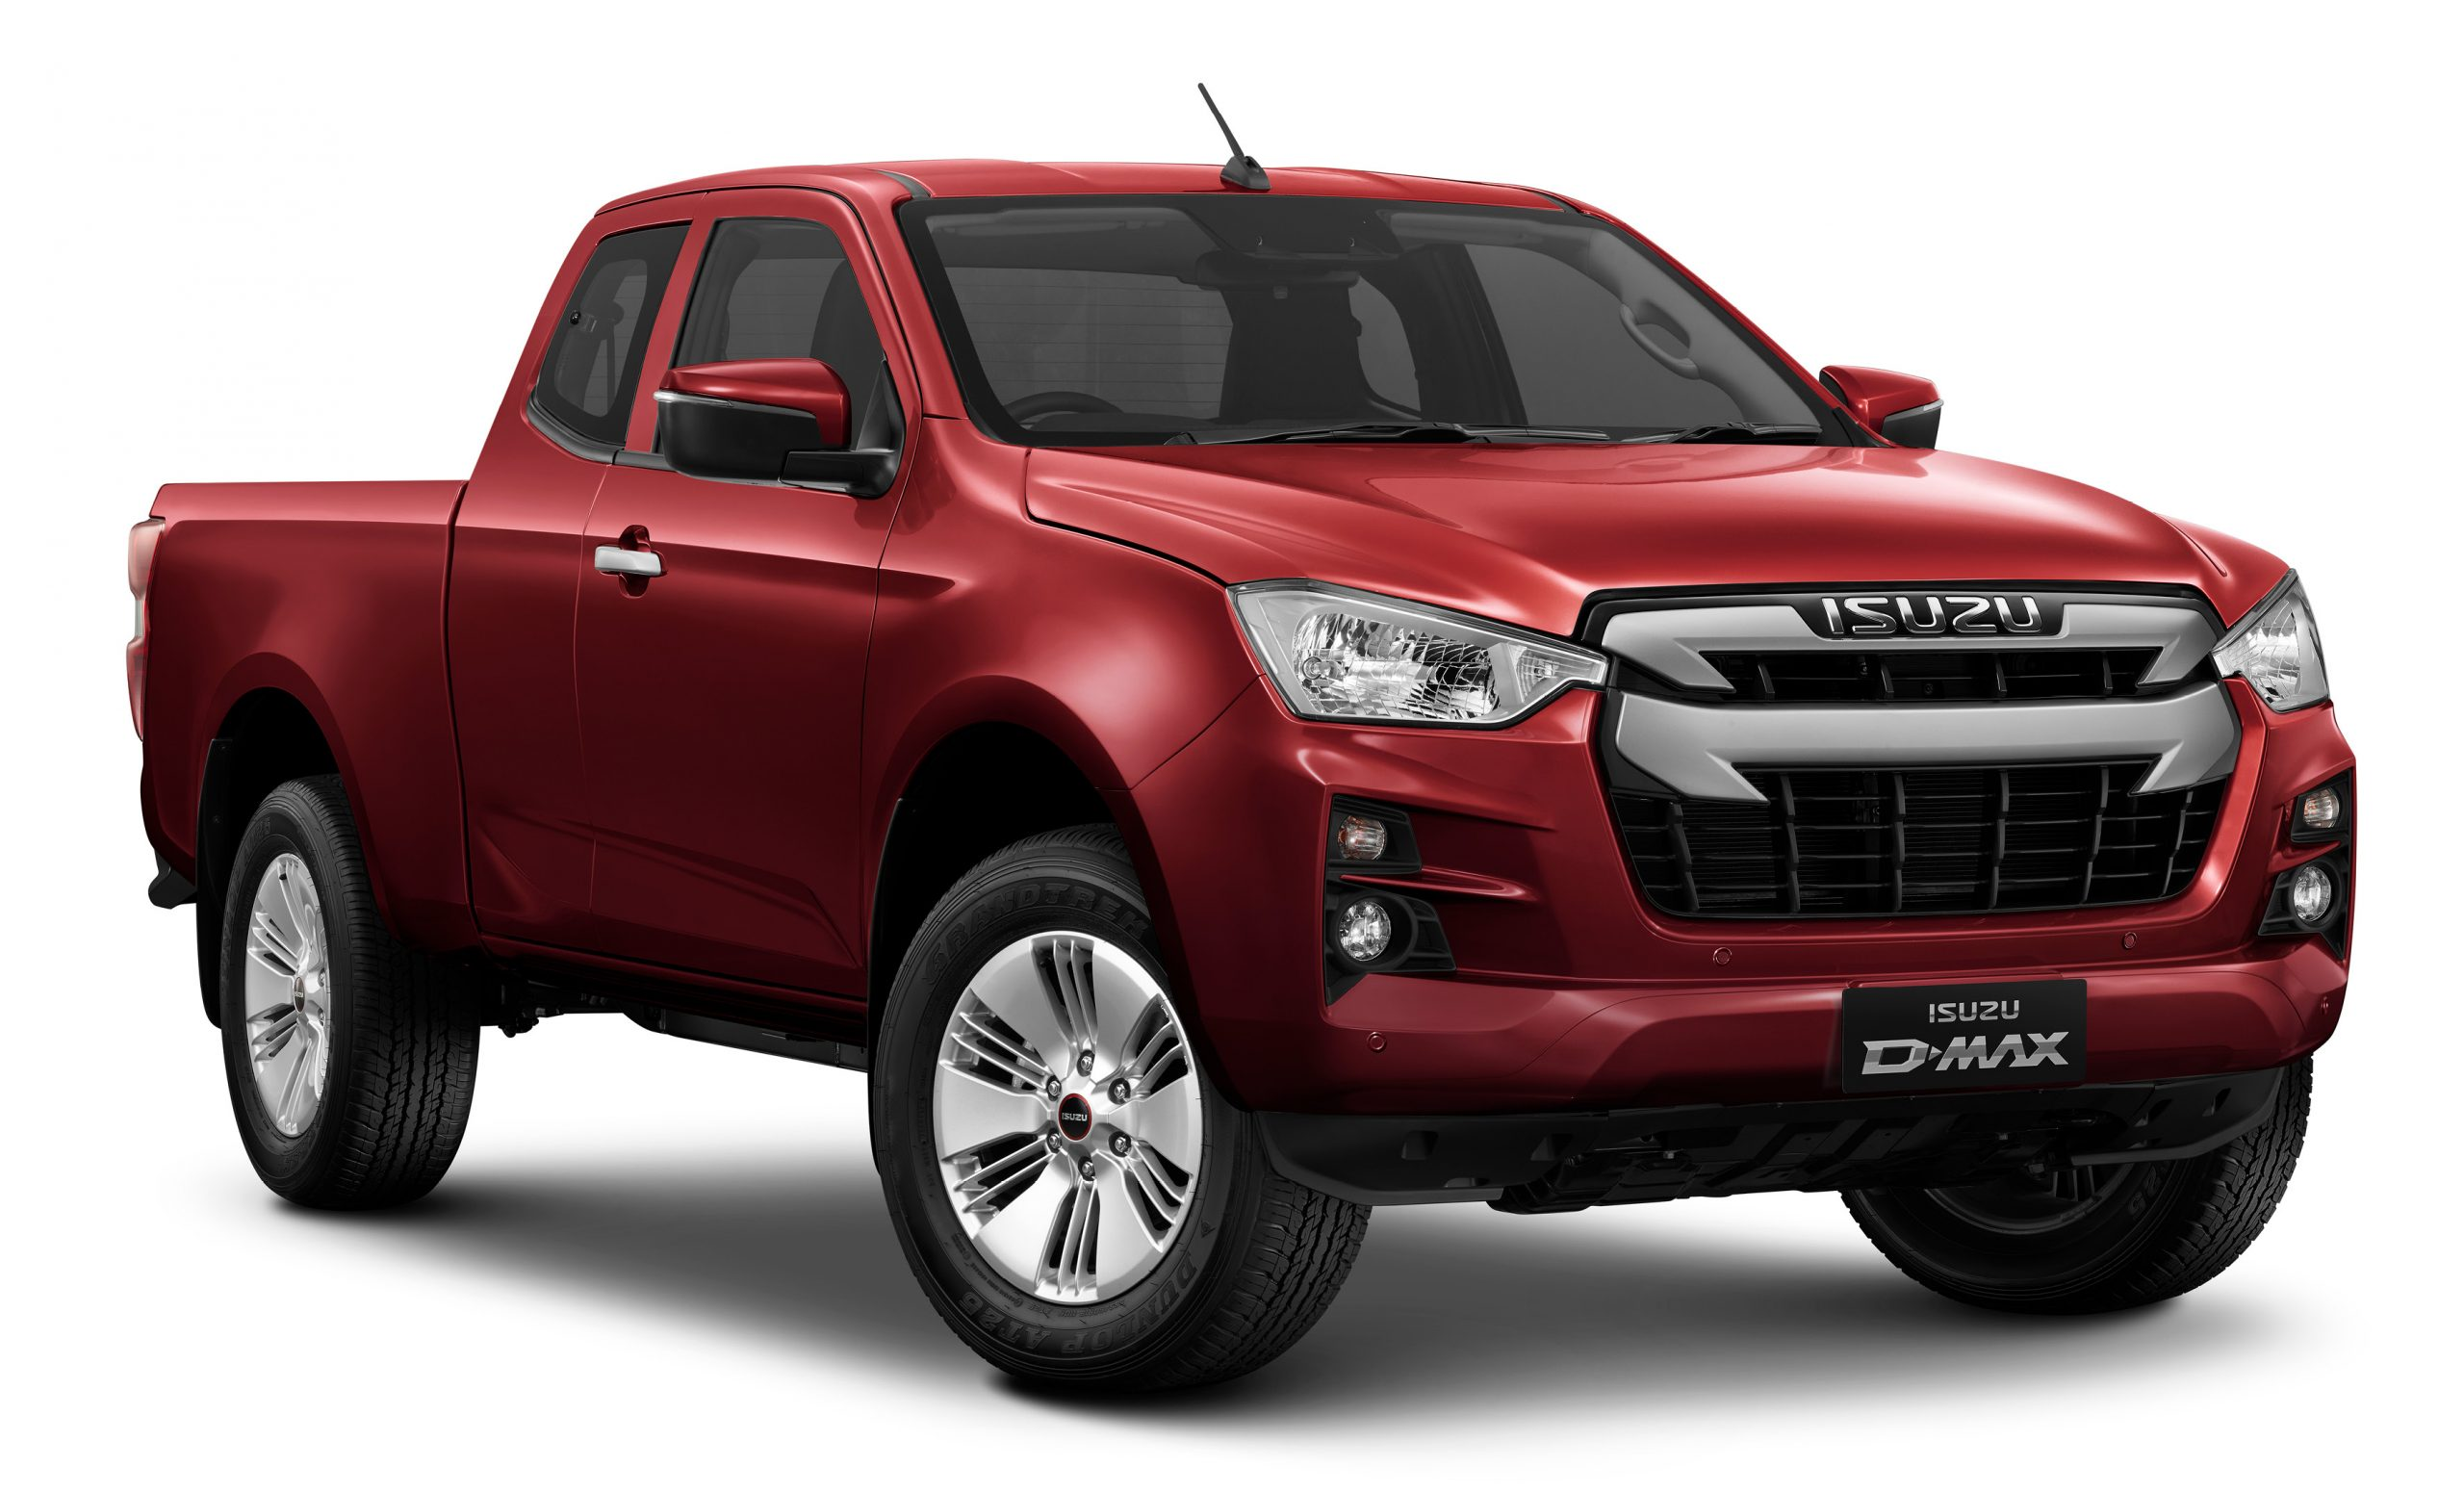 Isuzu D-Max DL20 Extended Cab Spinel Red